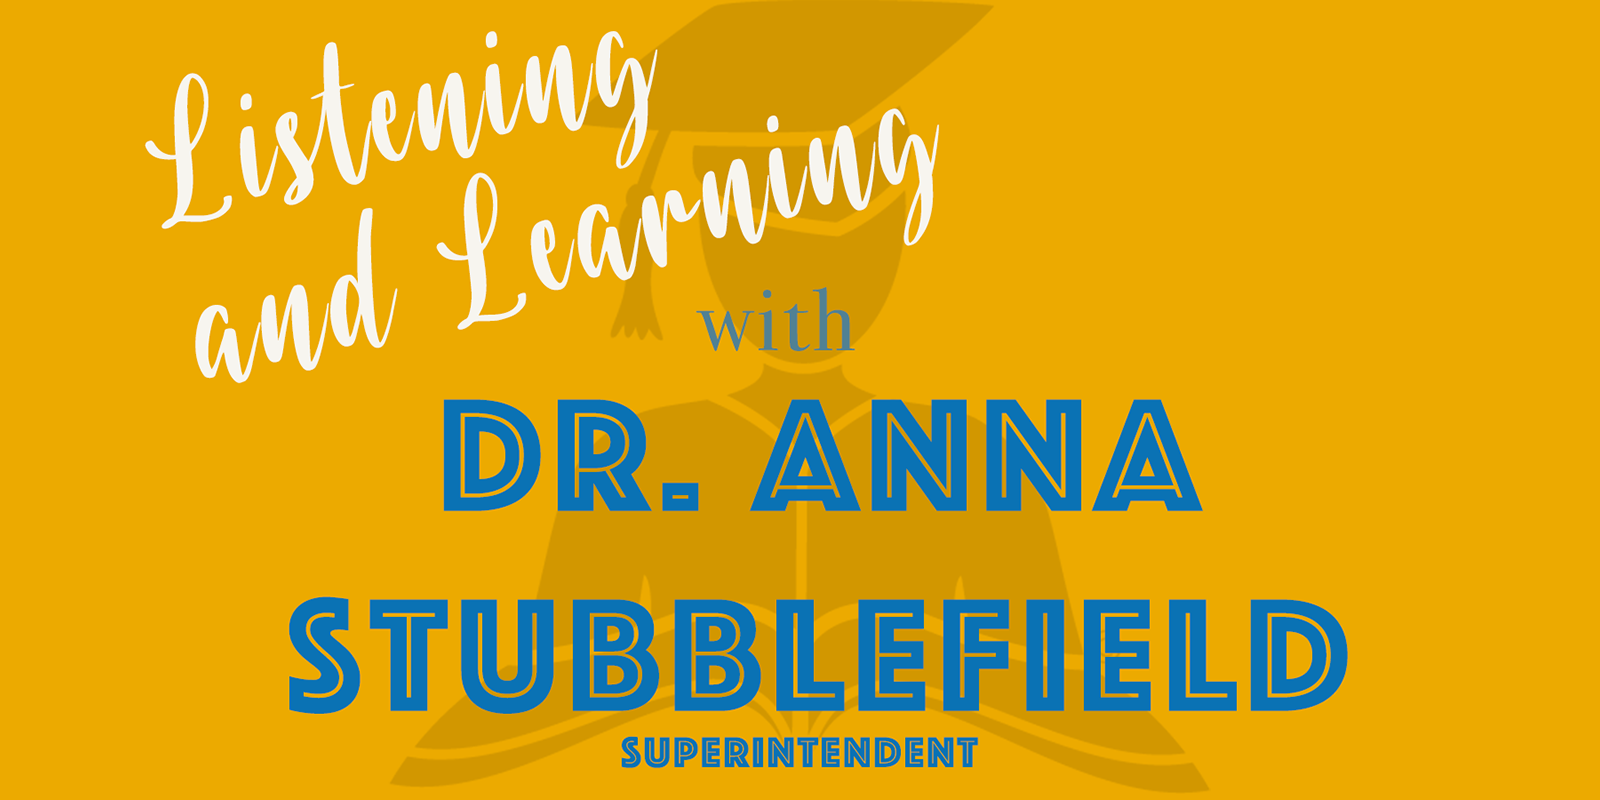 Listening and Learning Tours with Dr. Anna Stubblefield